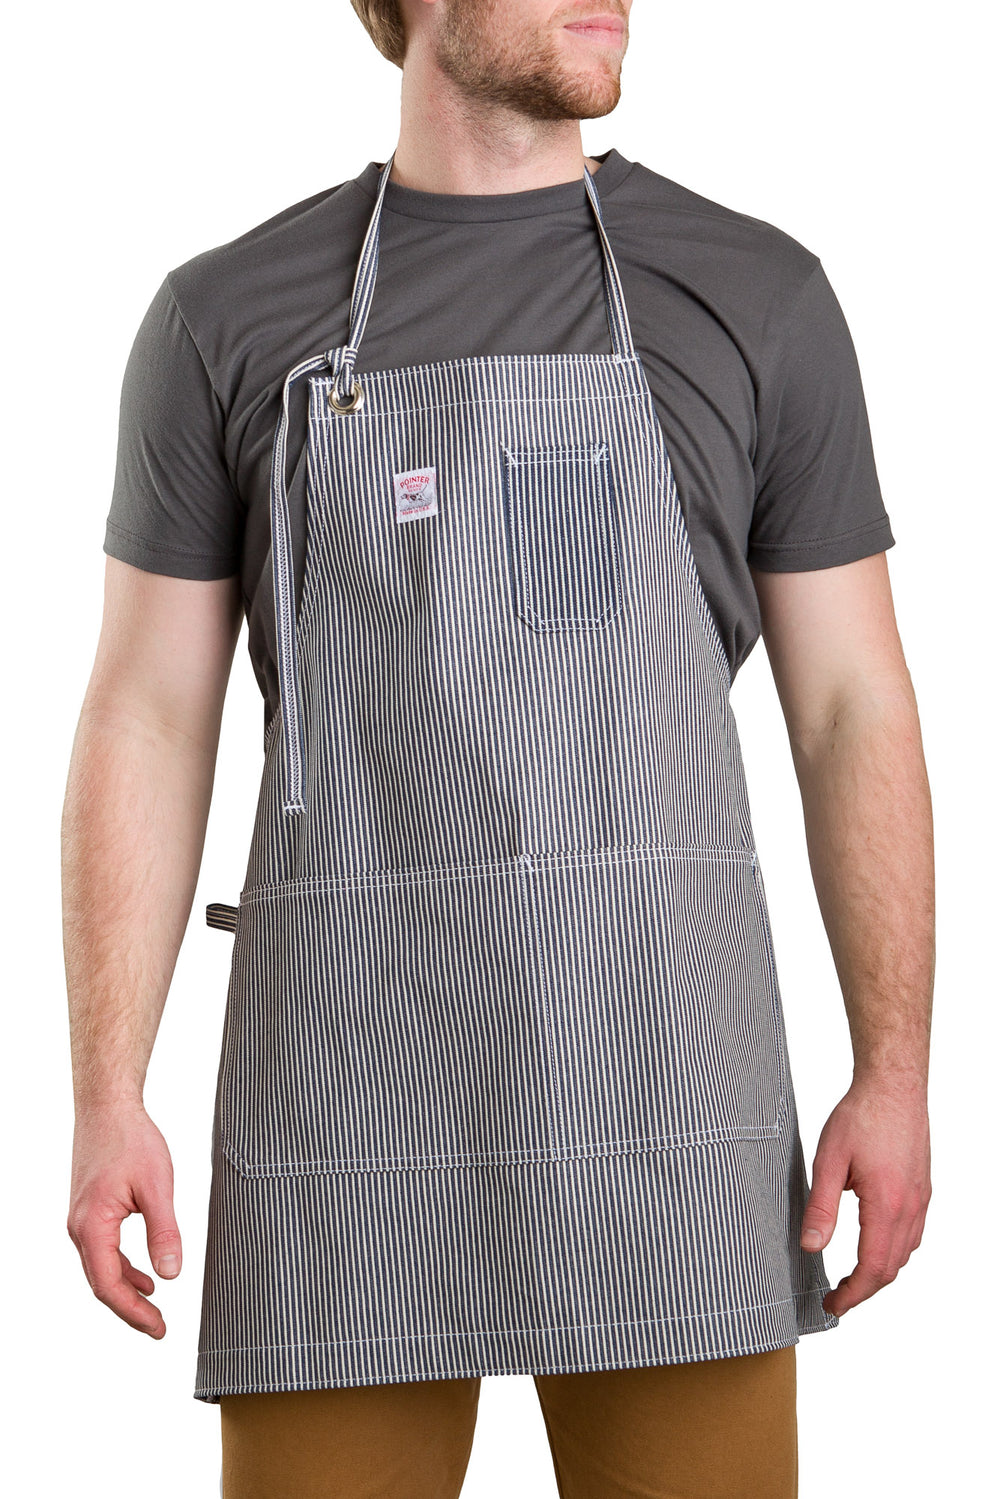 By what formula the width of the apron is calculated in the kitchen